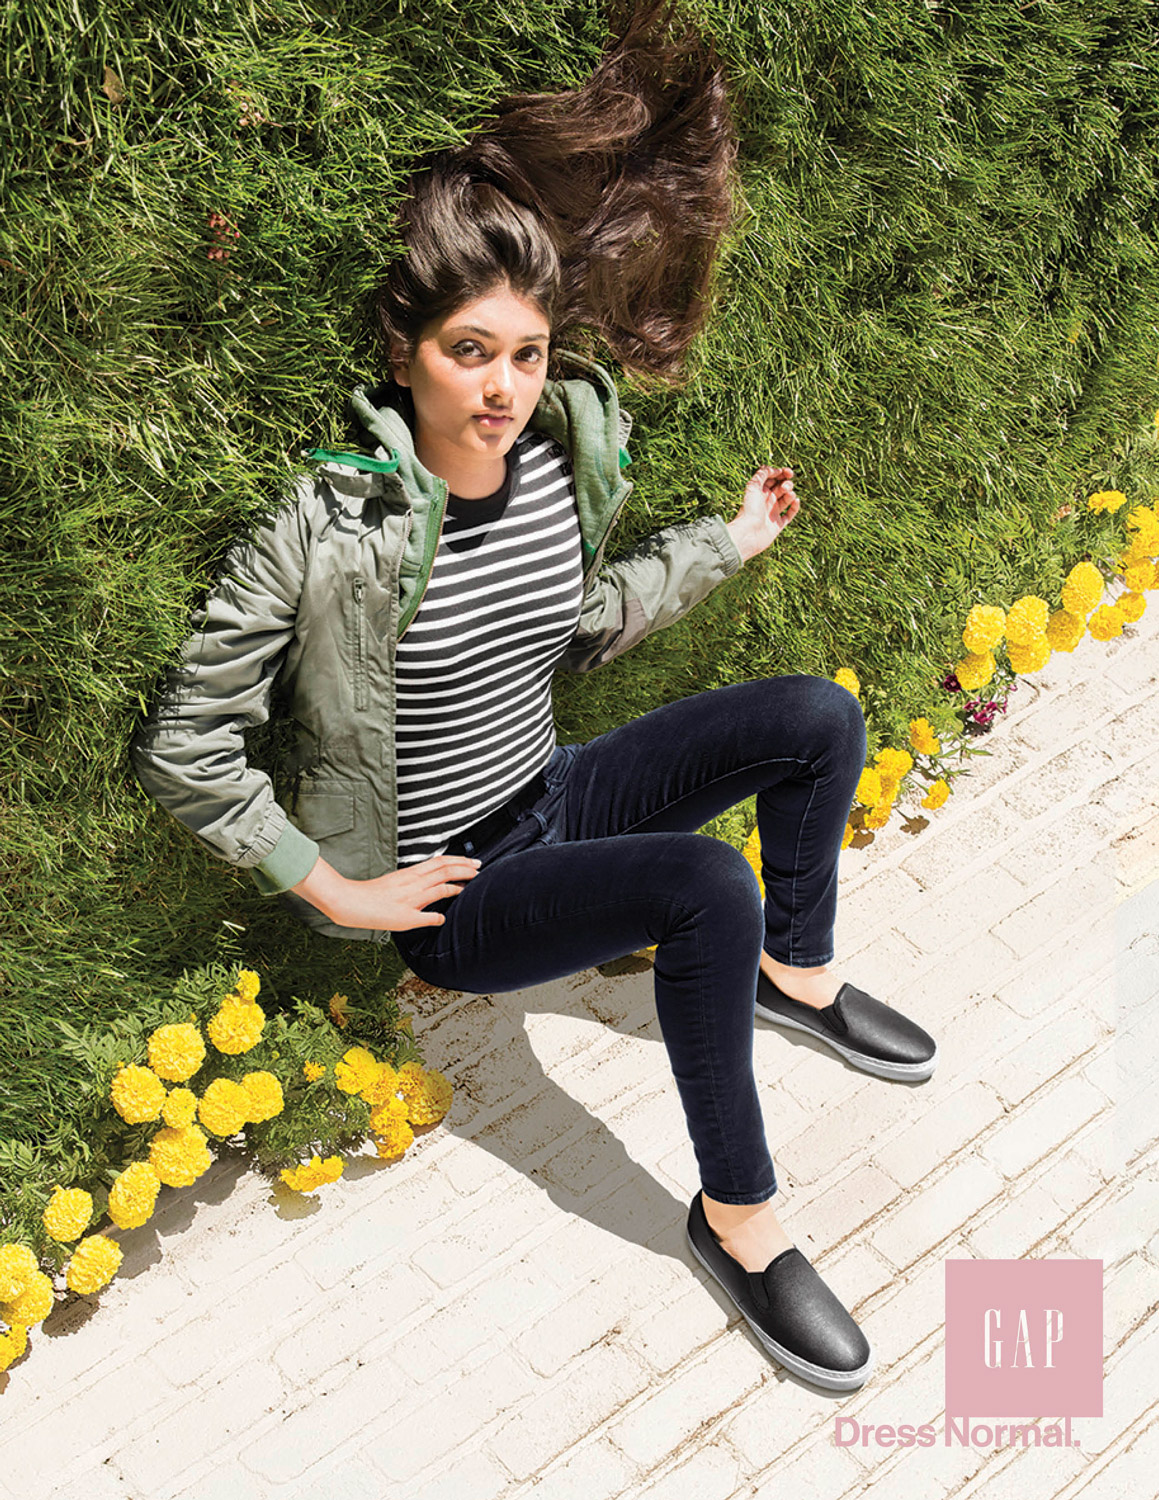 gap-ads-summer-2015-the-impression-09